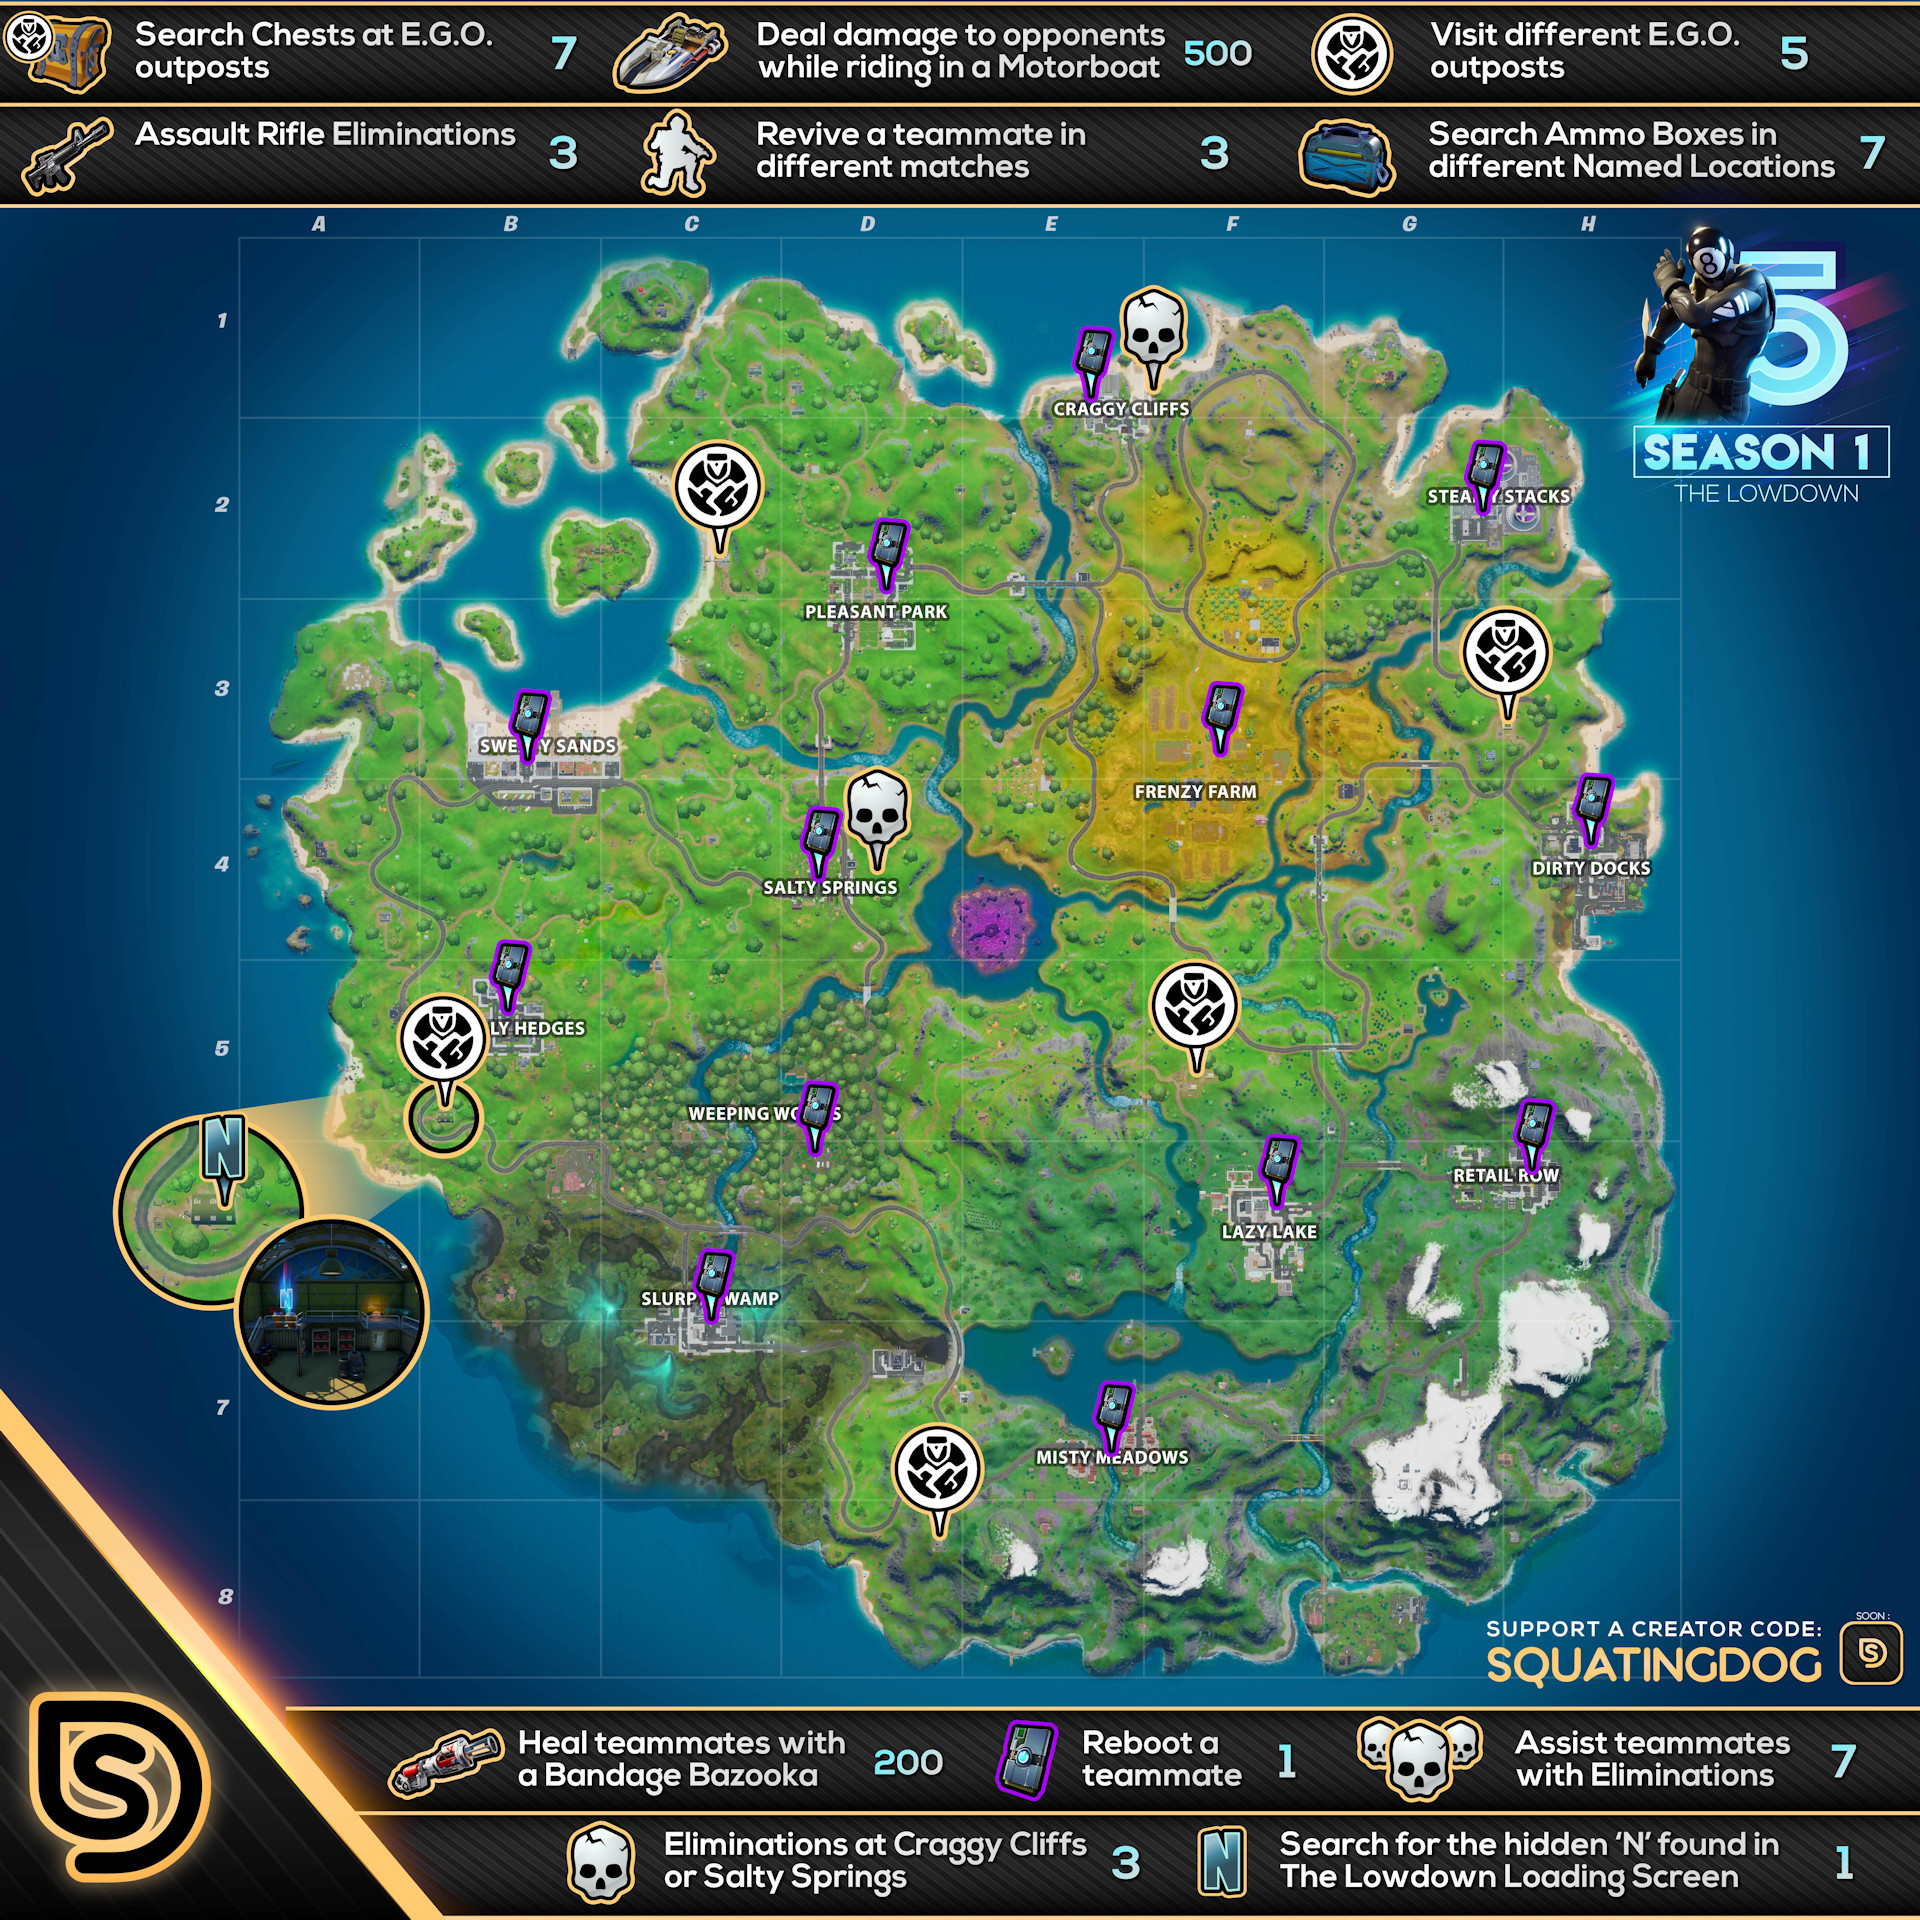 Fortnite Chapter 2 Season 1 Week 5 Challenges Cheat Sheet Video Games Blogger Fortnite season 5 is here, with punch cards now labeled as xp quests. video games blogger